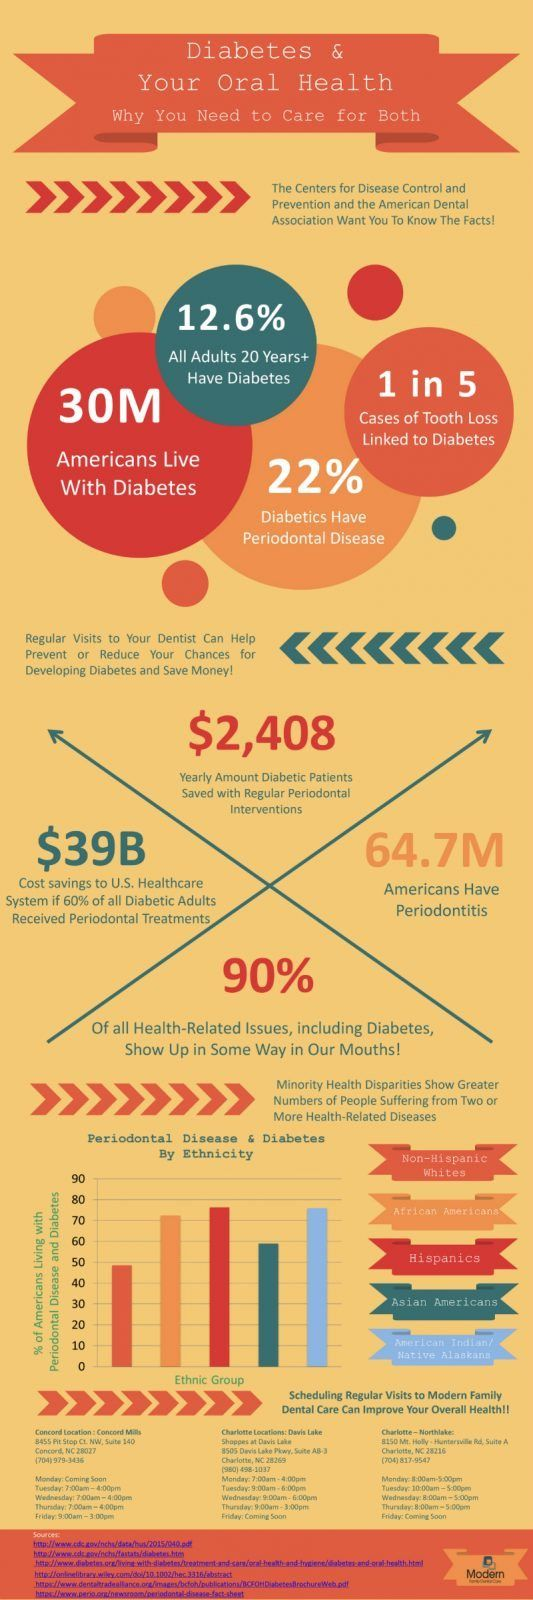 The Media Pro Created this Infographic for Modern Family Dental Care